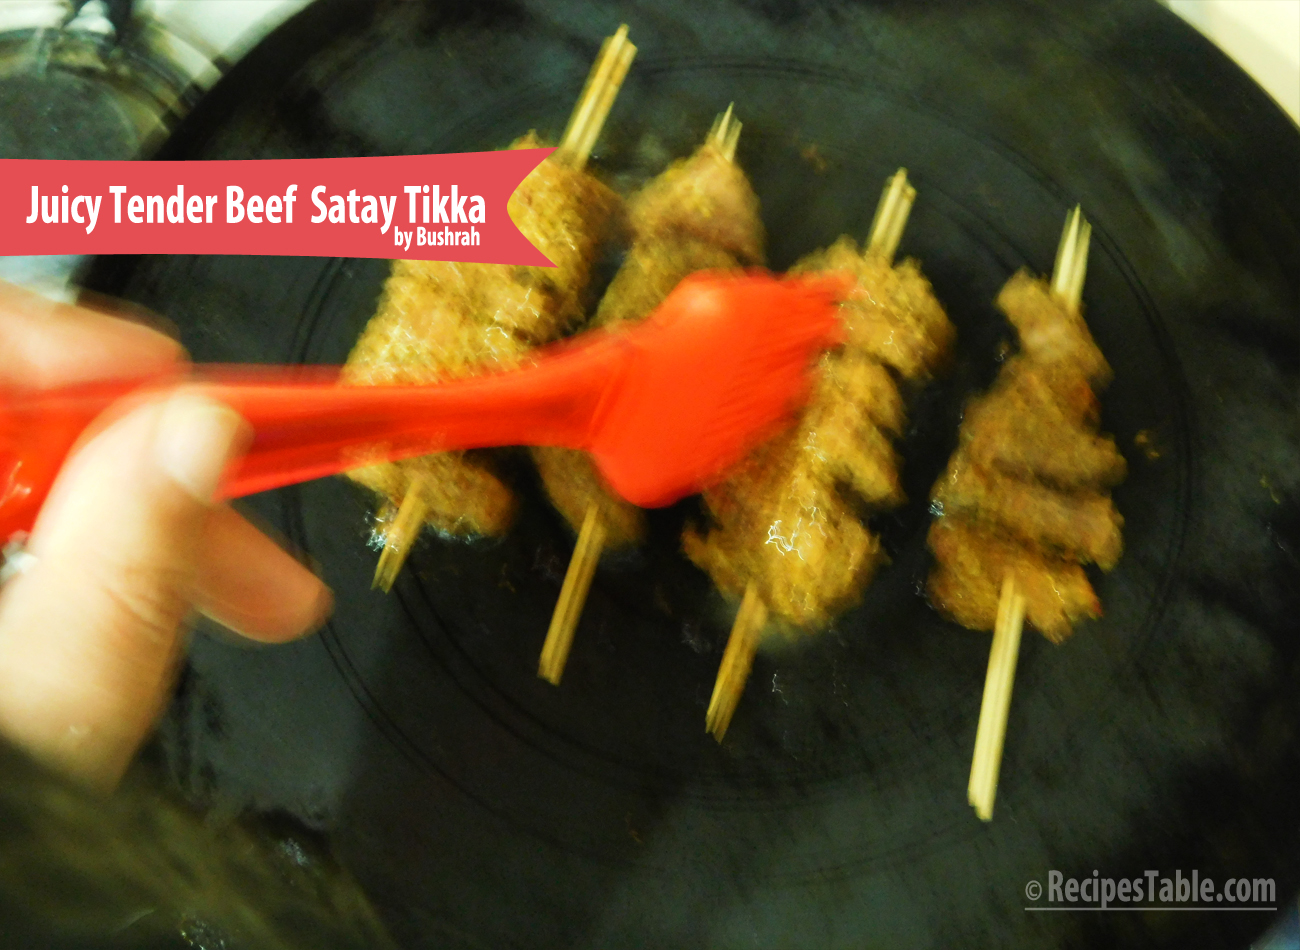 Juicy and Tender Beef Satay Tikka recipe